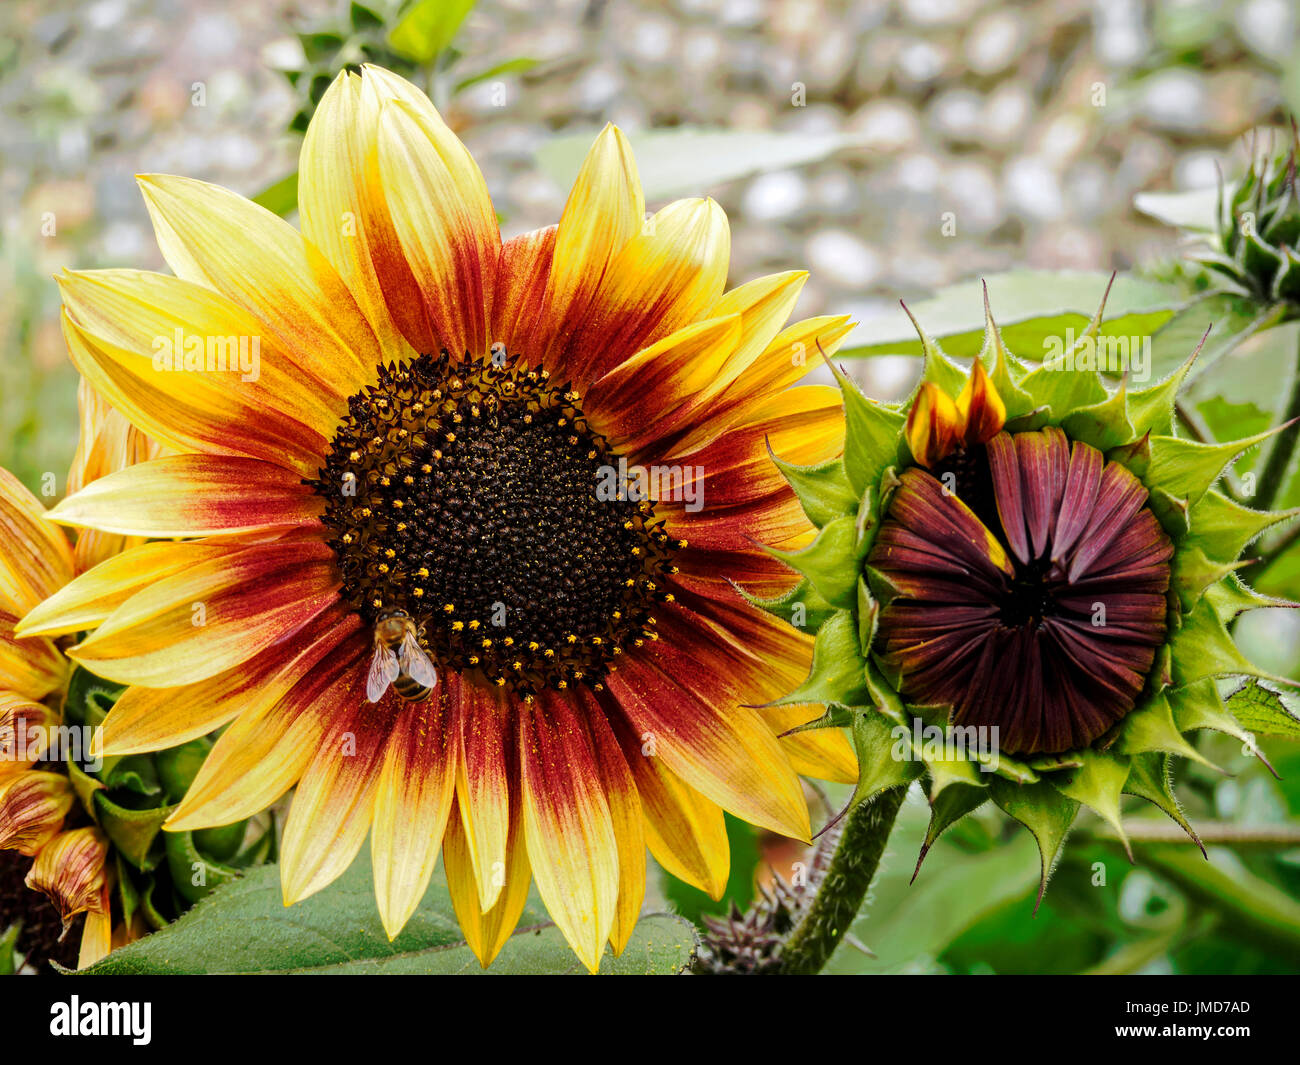 Flower and bud of sunflower Helios Flame, an F1 hybrid of Helianthus annuus. Stock Photo